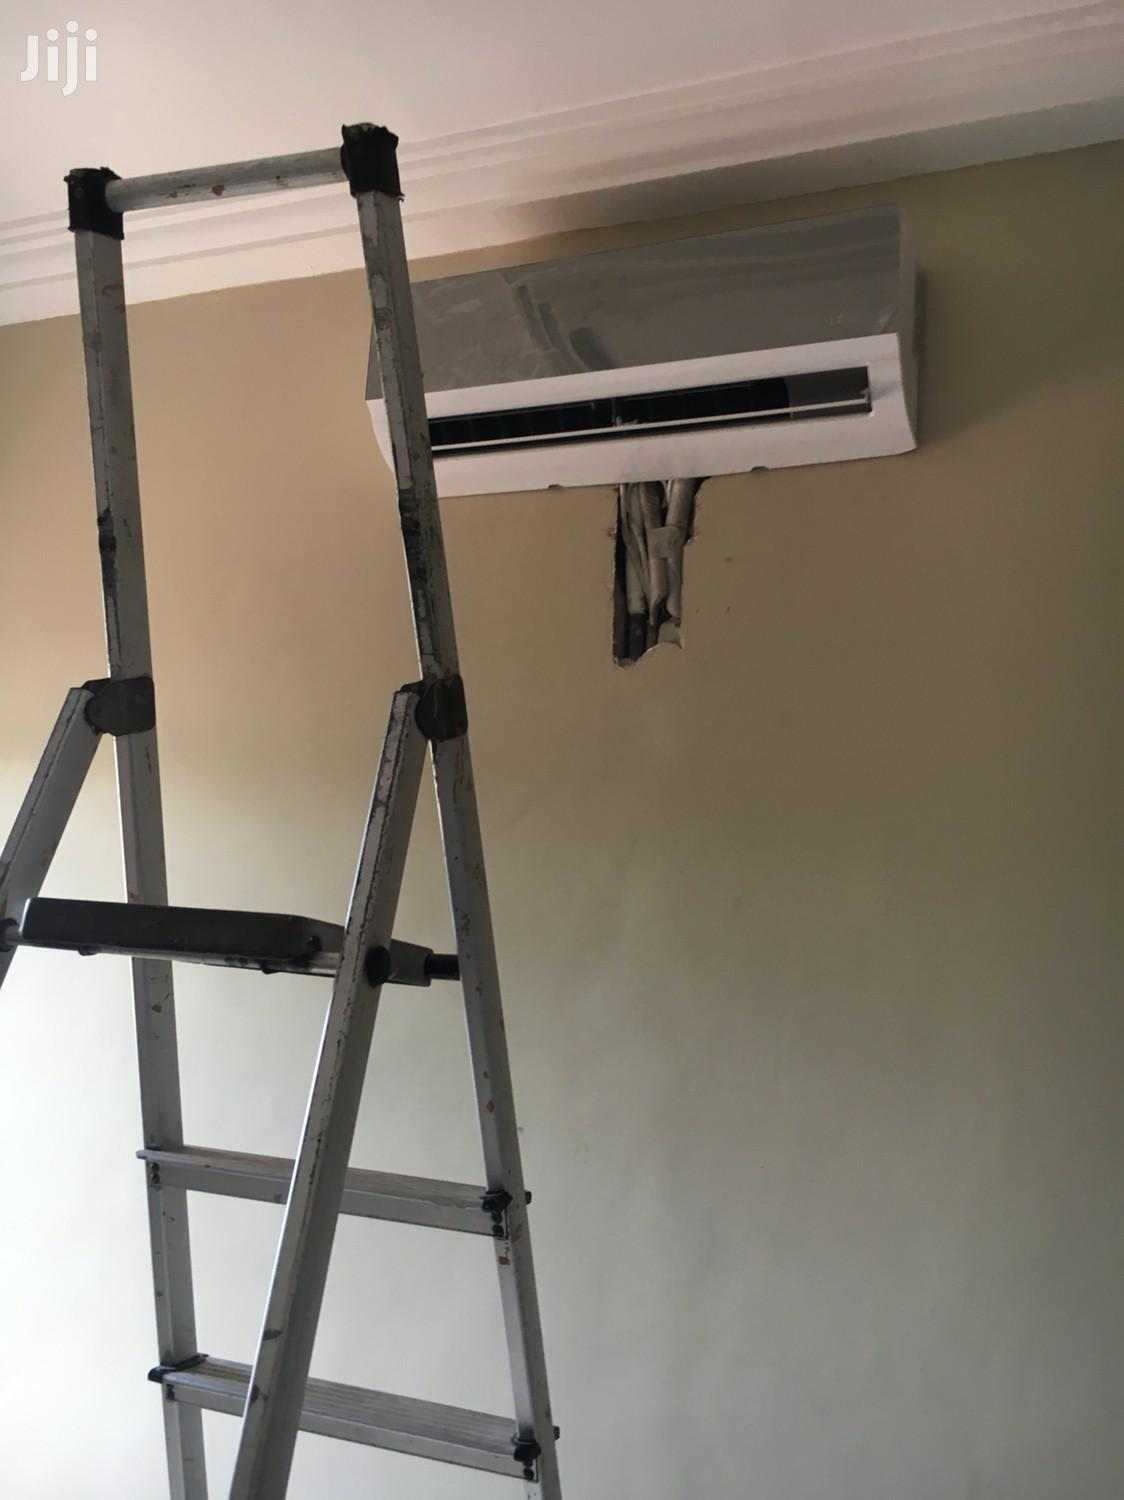 Air Conditioning | Building & Trades Services for sale in Burma Camp, Greater Accra, Ghana